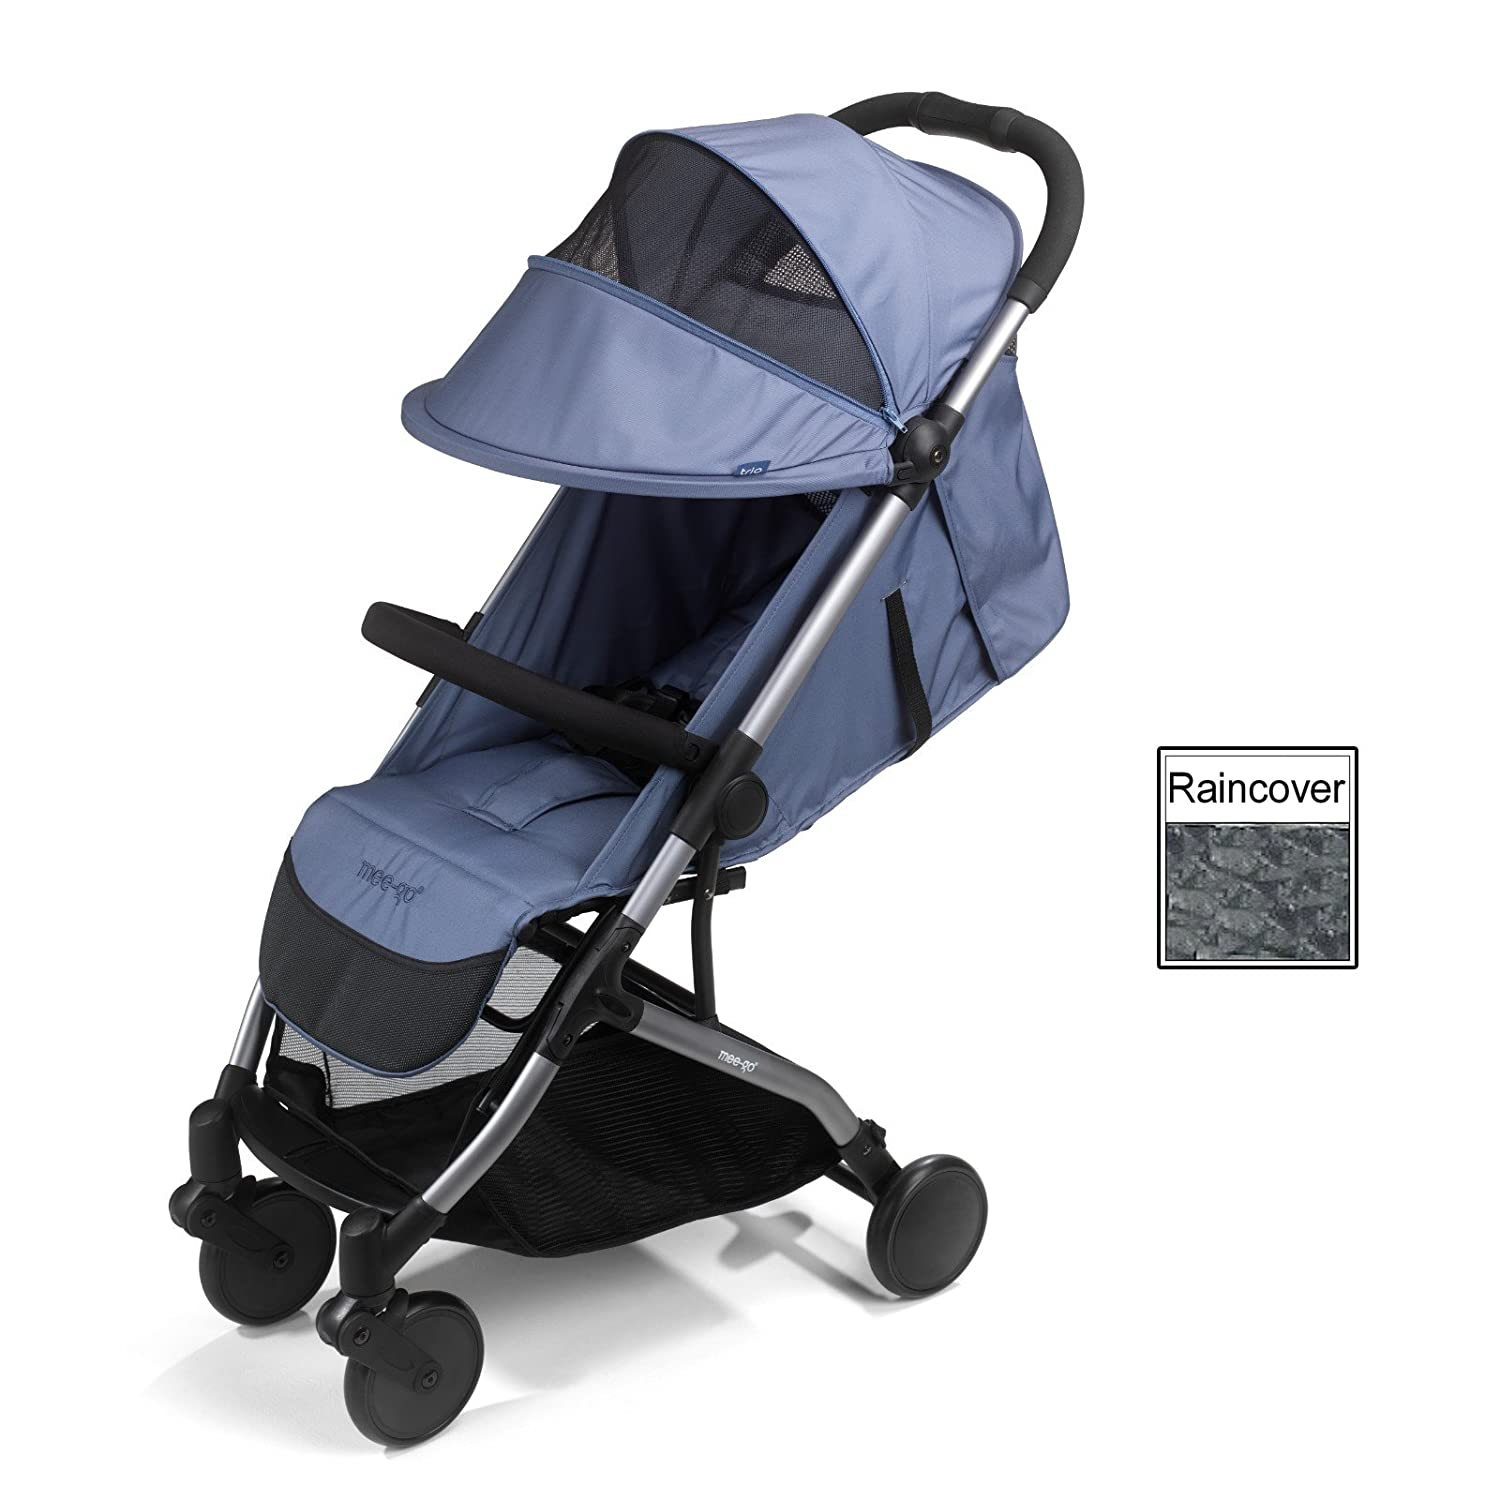 Mee-Go Trio Tri-Fold Stroller - Ultra Lightweight Weighs only 7kgs - Includes Raincover - Slate Blue on Gun Metal Grey Chassis